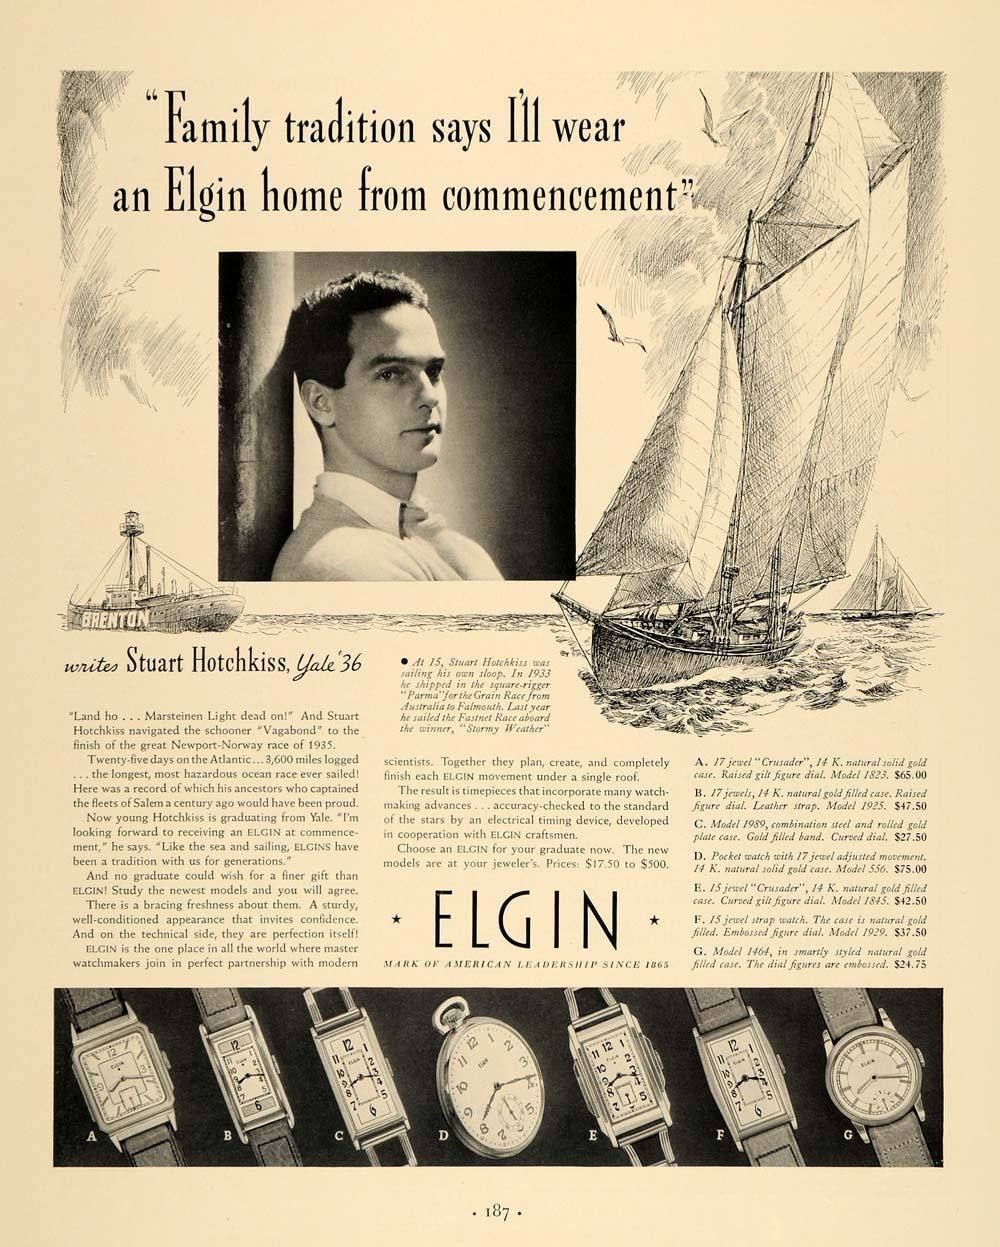 1936 Elgin Watch Company Ad featuring Hotchkiss Newport-Norway Race